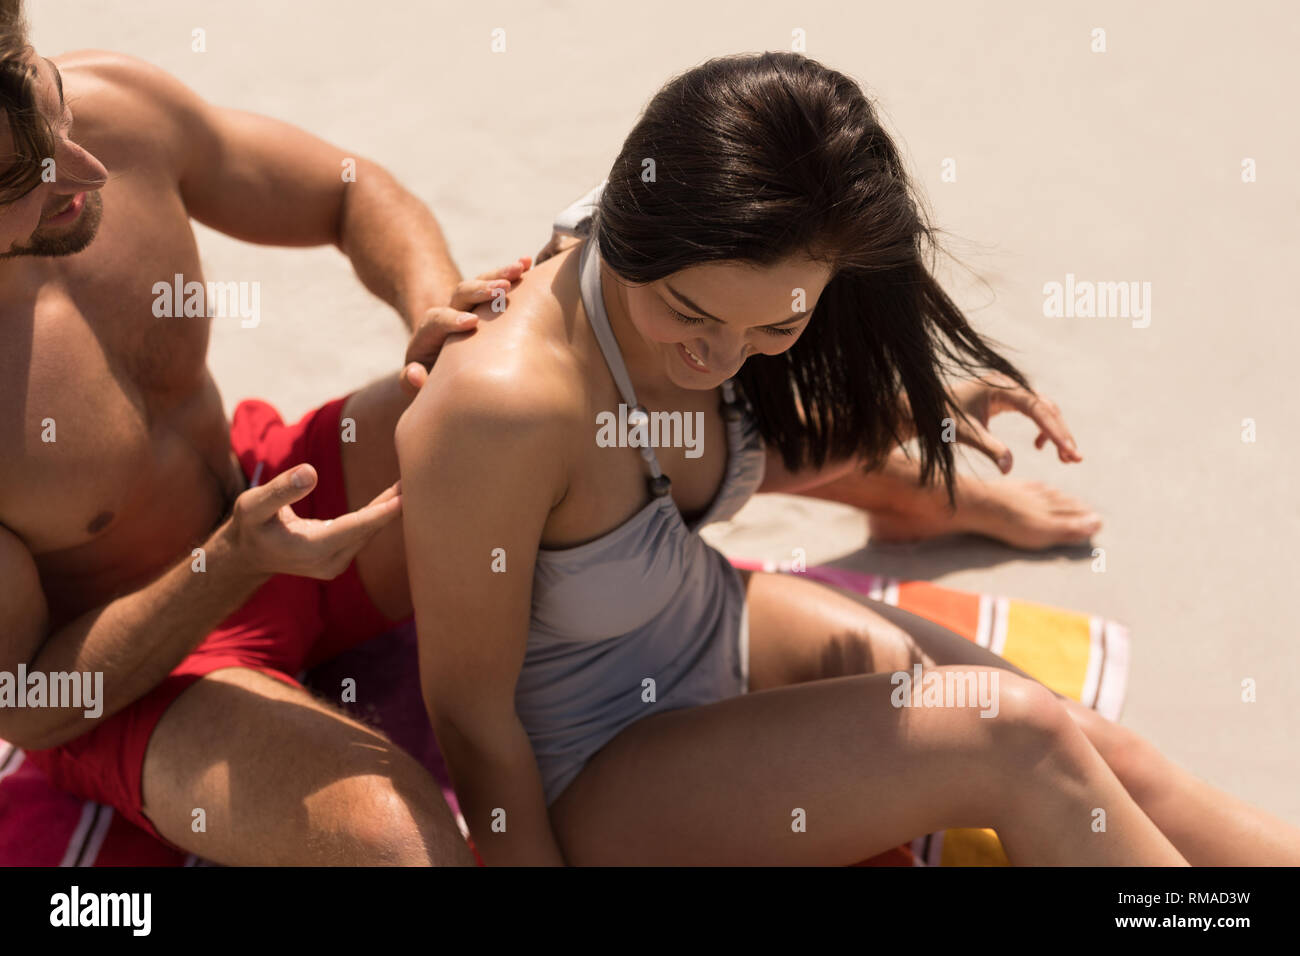 Happy young man applying sunscreen lotion on woman back at beach - Stock Image